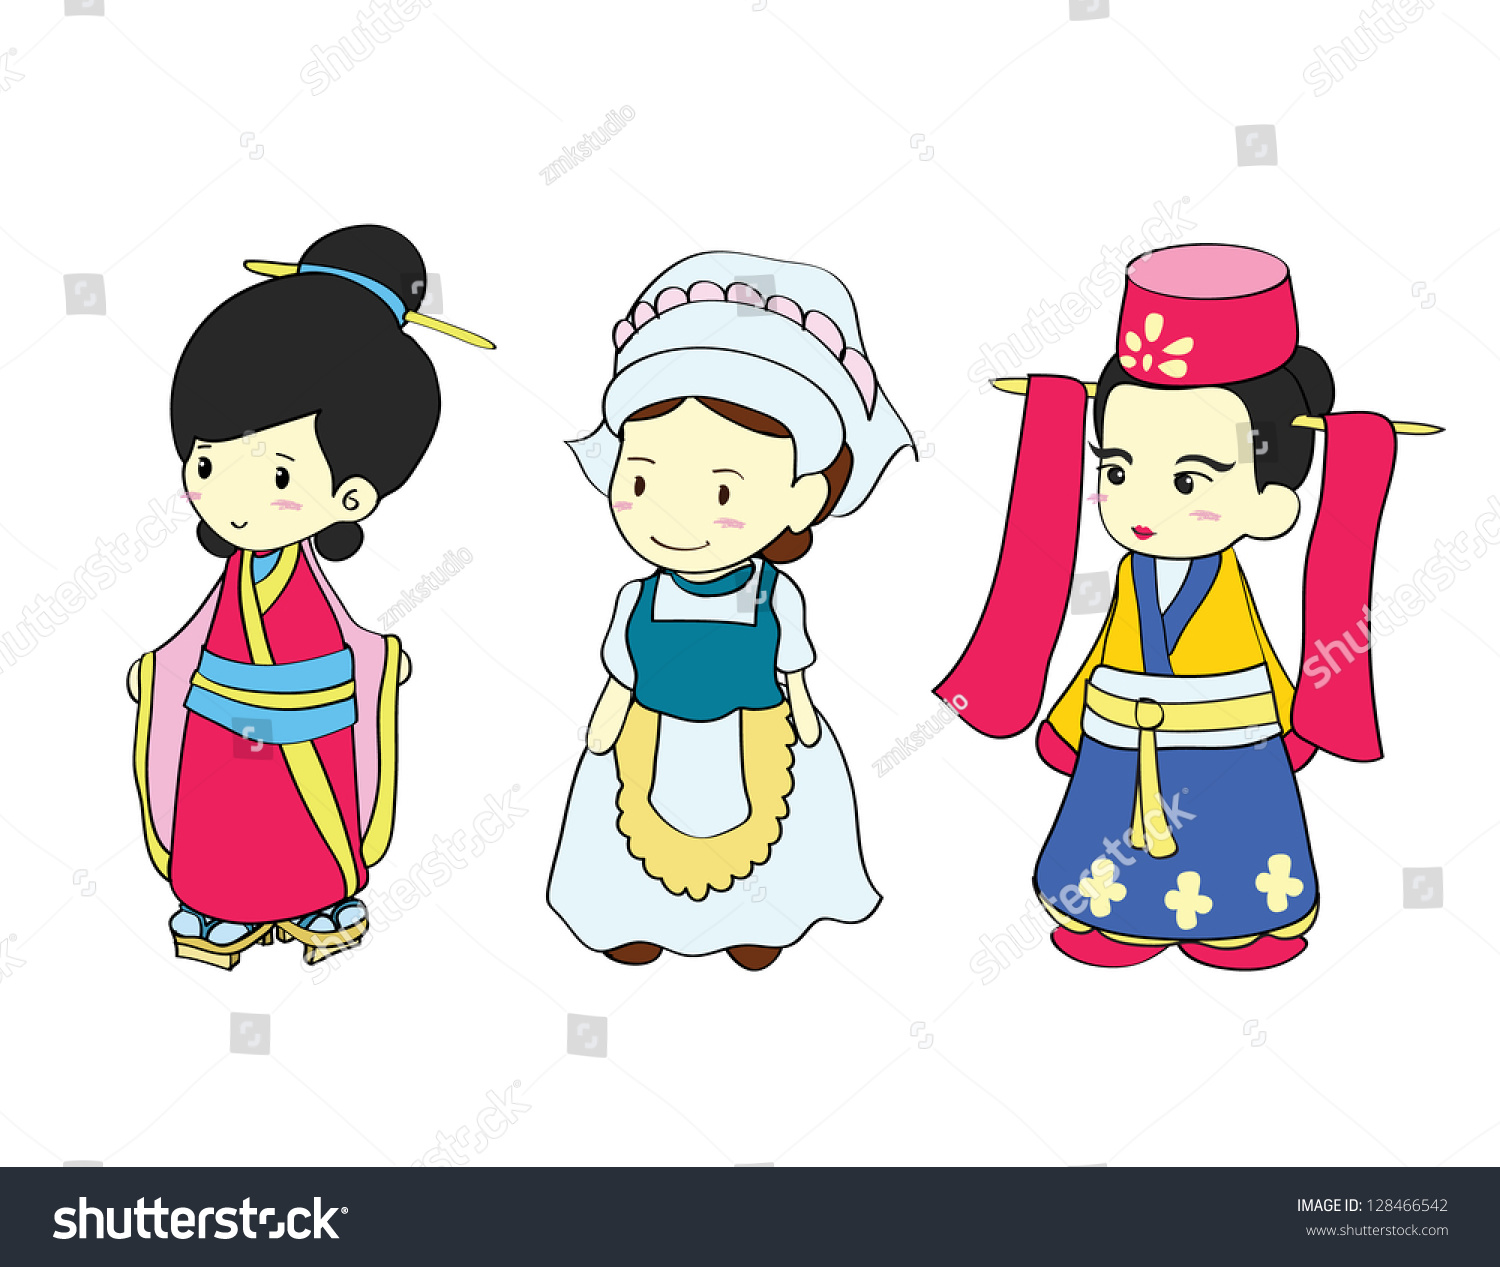 Girls In Traditional Costume Of Asian Country Cartoon